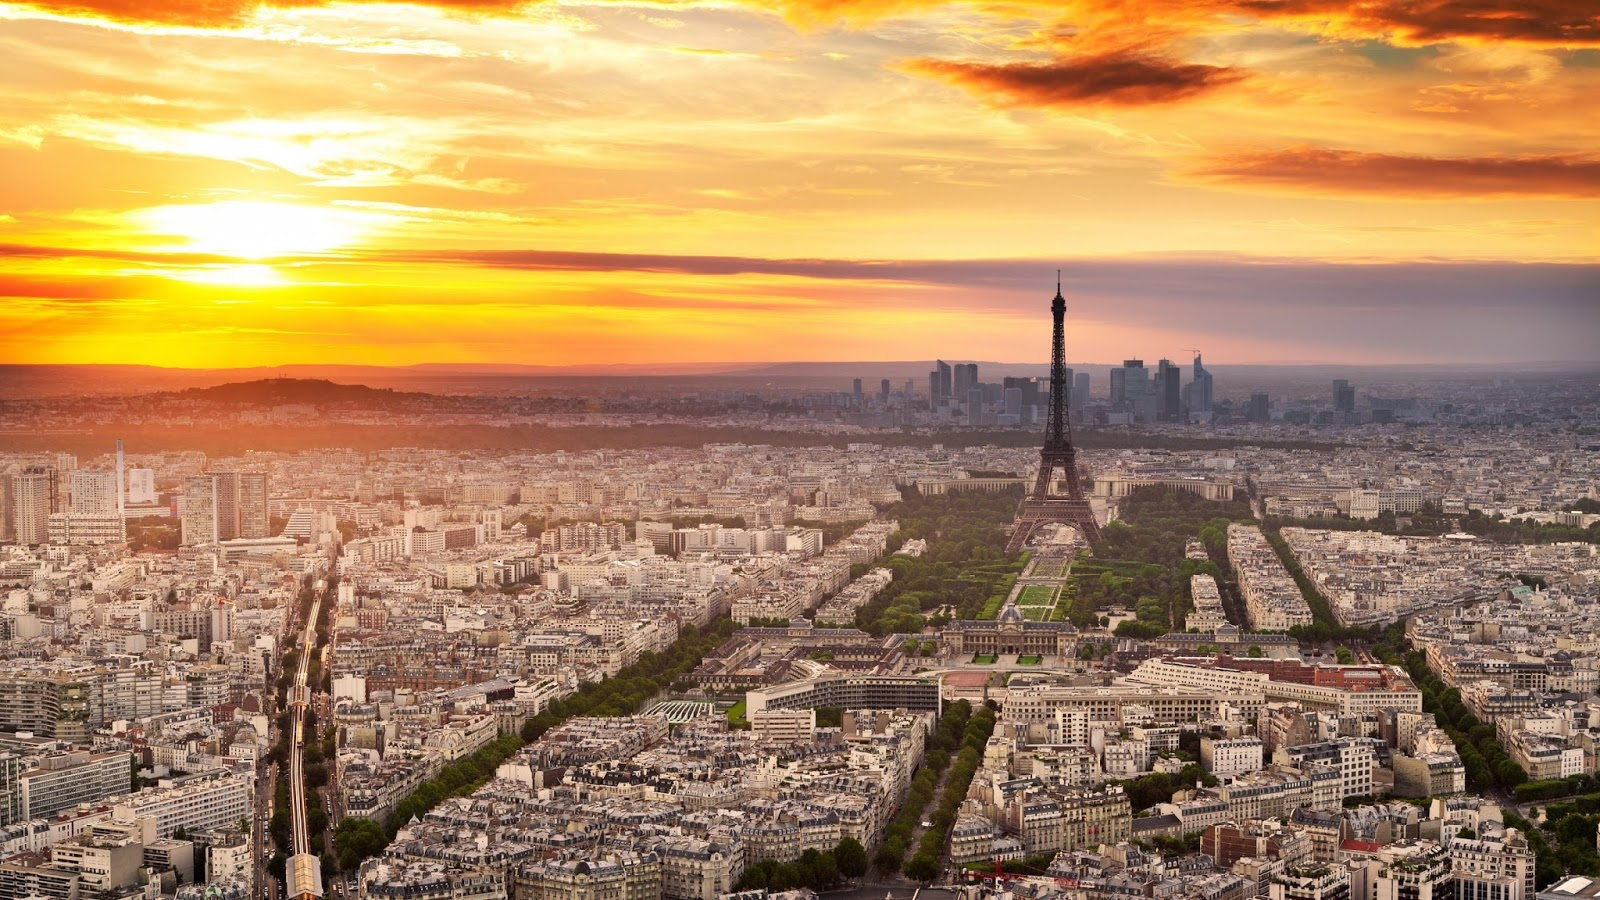 A Hd Wallpapers World Famous Eiffel Tower Hd Wallpapers With 4k And